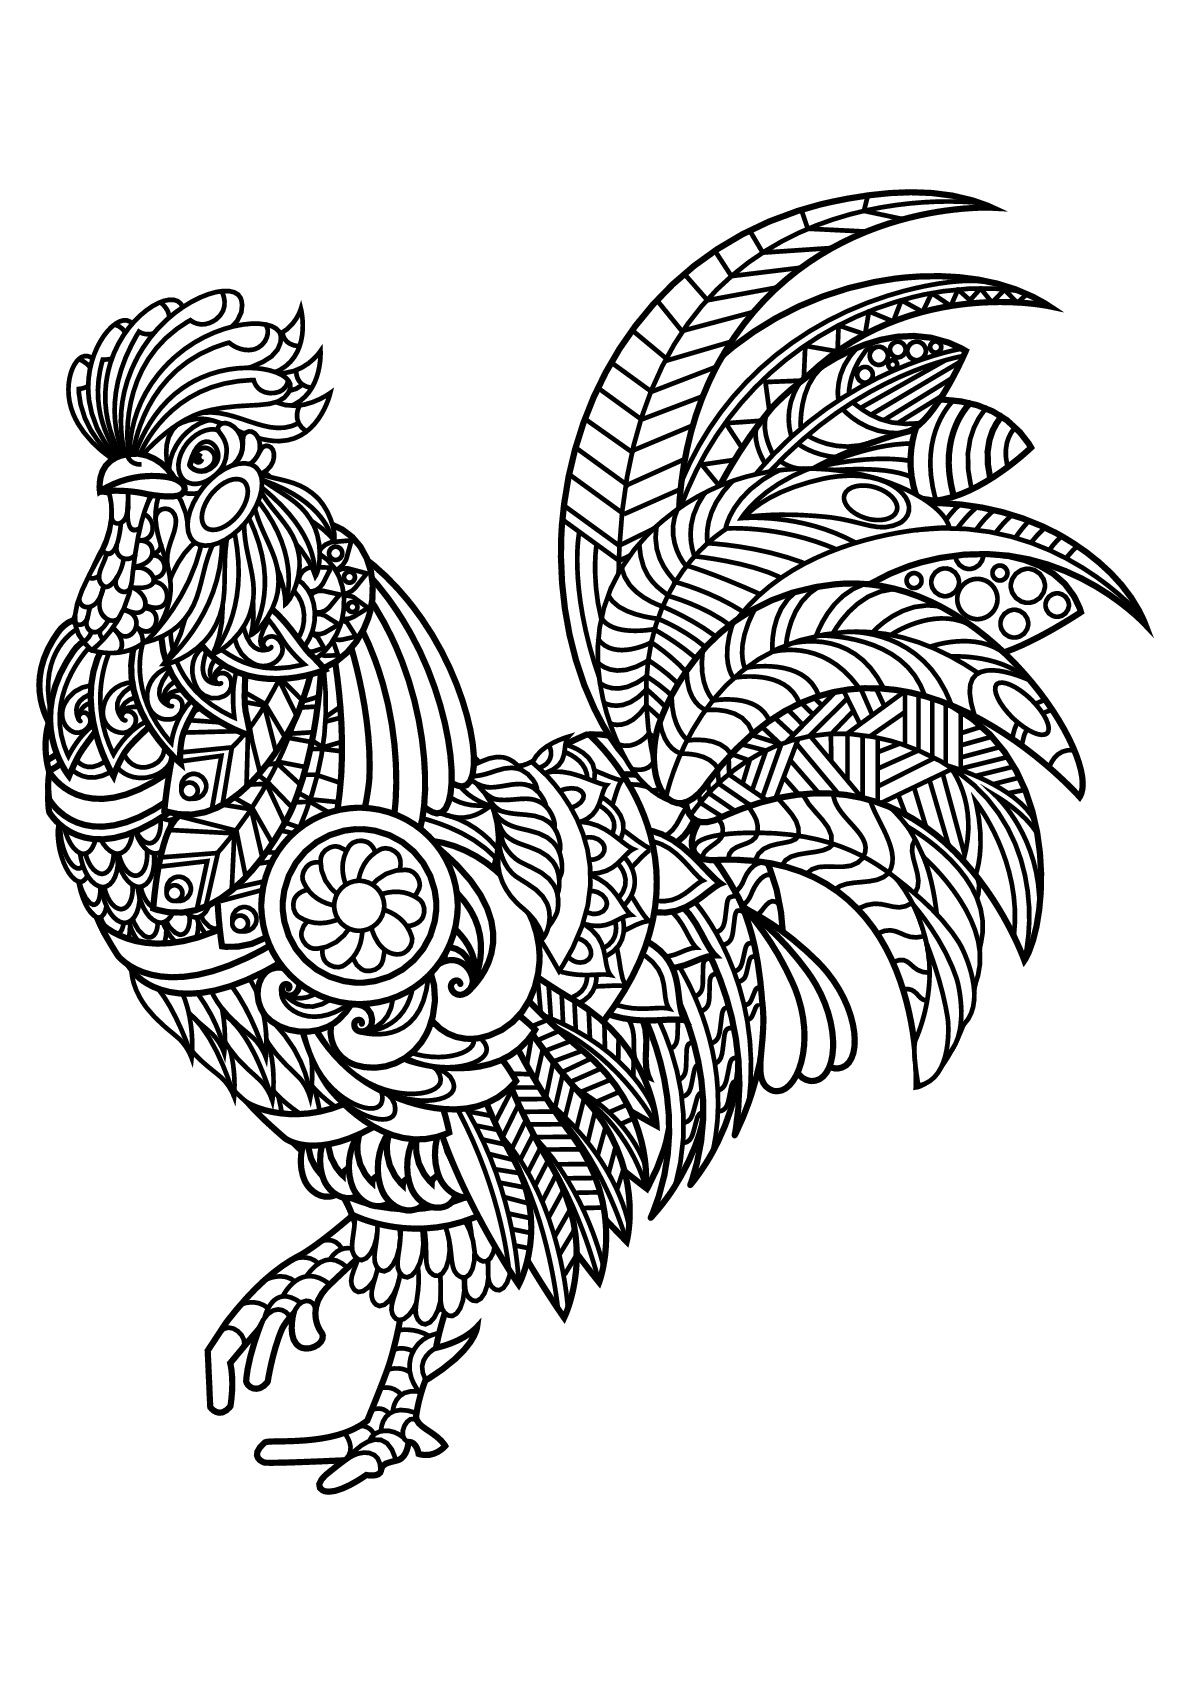 25 Brilliant Photo Of Rooster Coloring Page Albanysinsanity Com In 2020 Chicken Coloring Pages Horse Coloring Pages Bird Coloring Pages